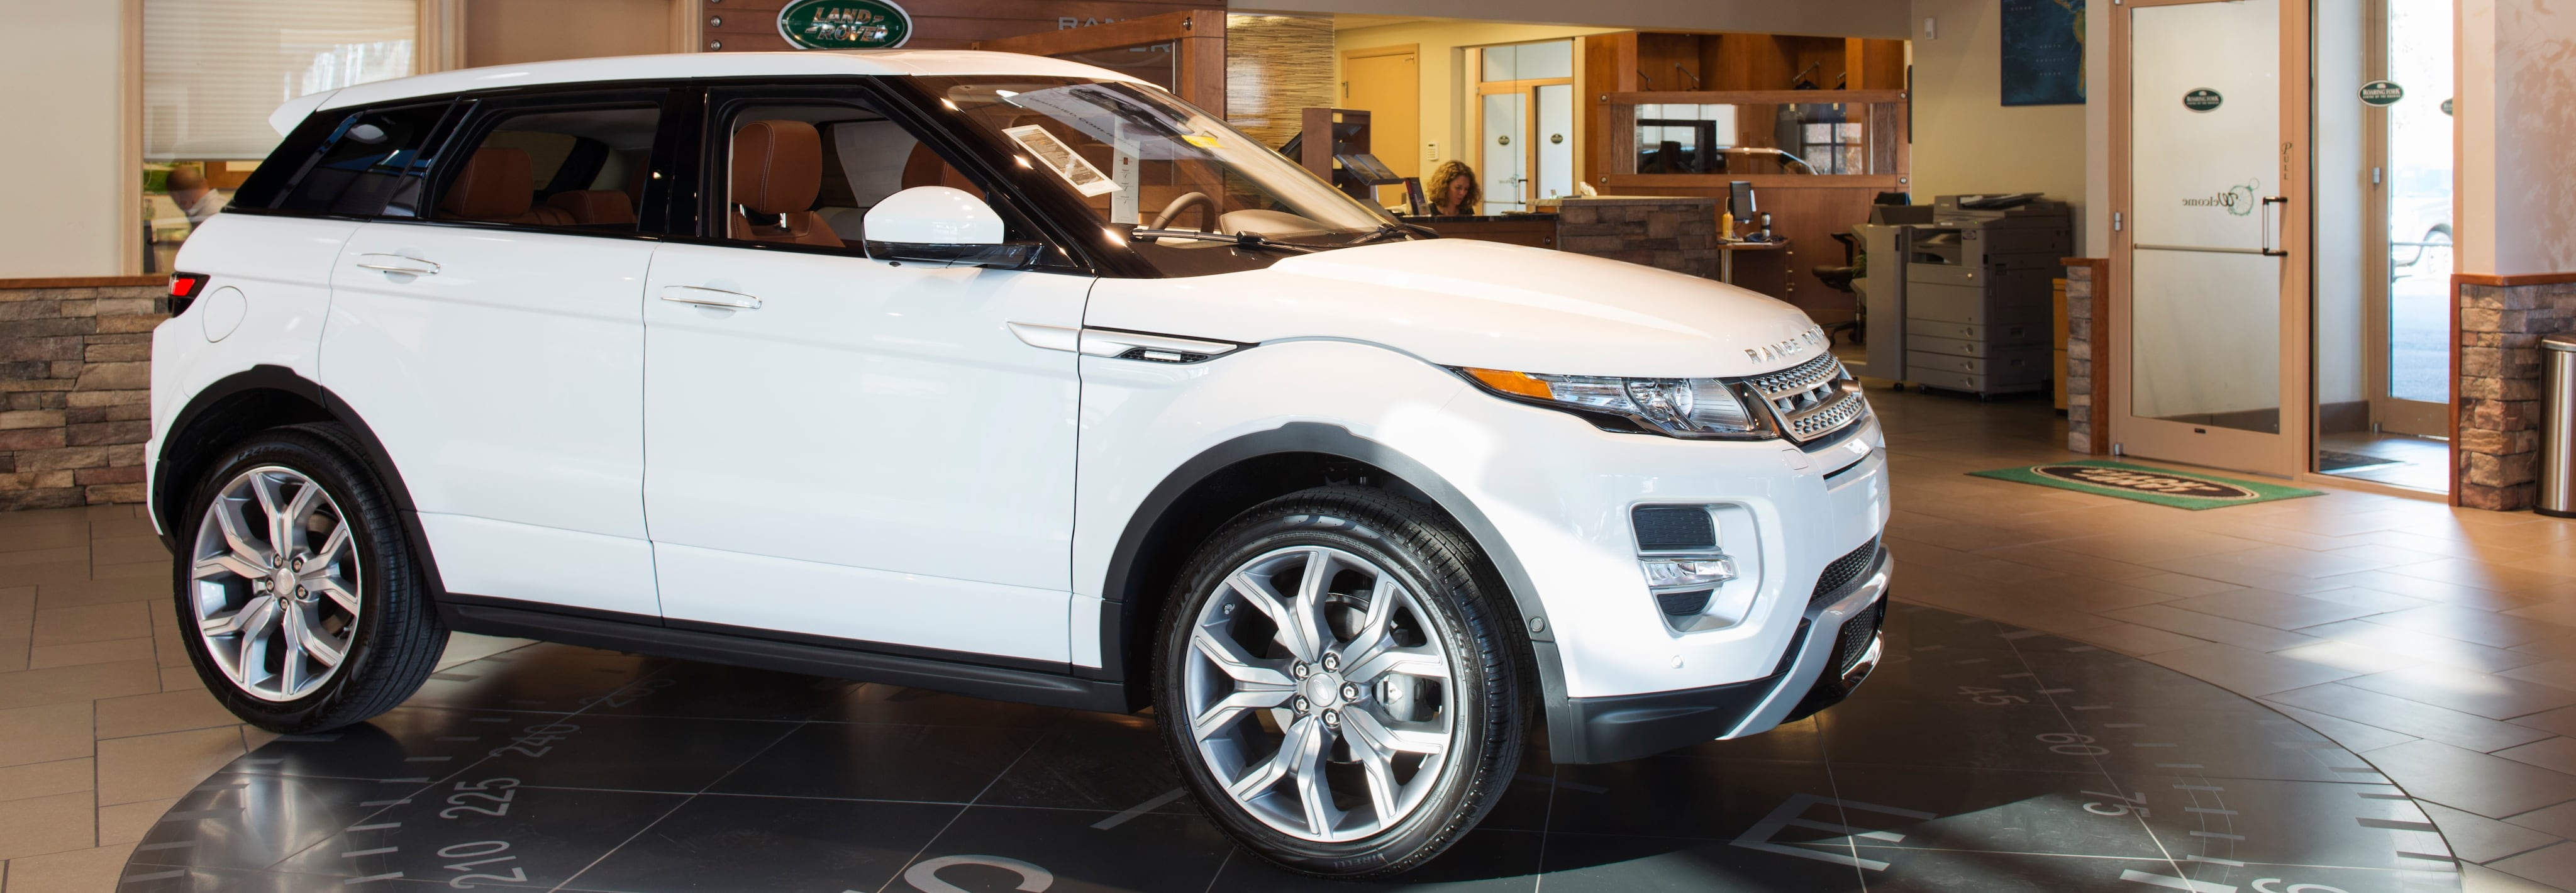 Why Buy at Land Rover Roaring Fork